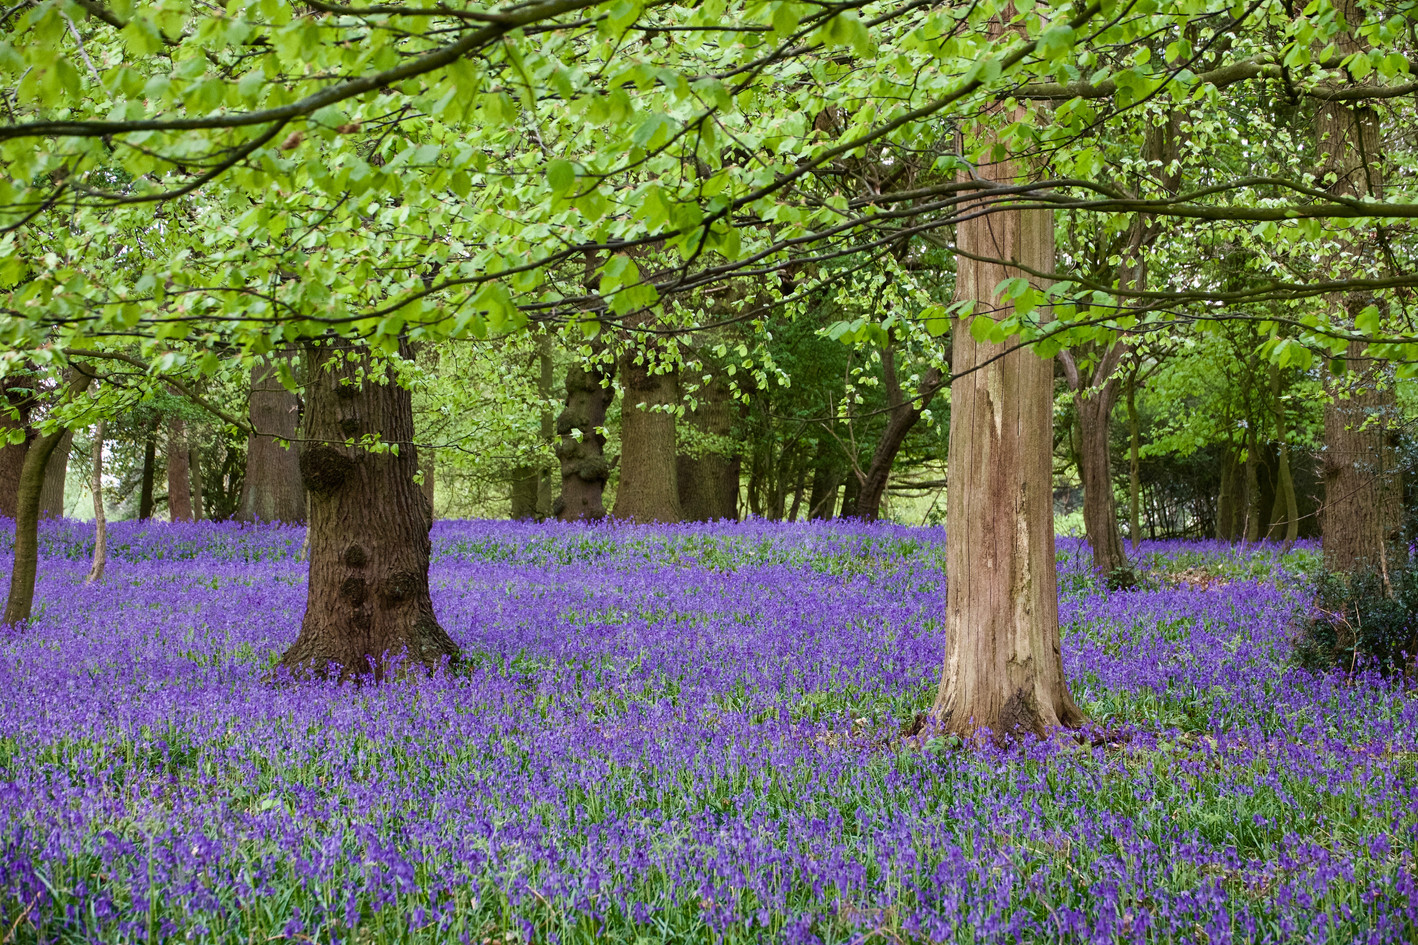 Bluebells in abundance